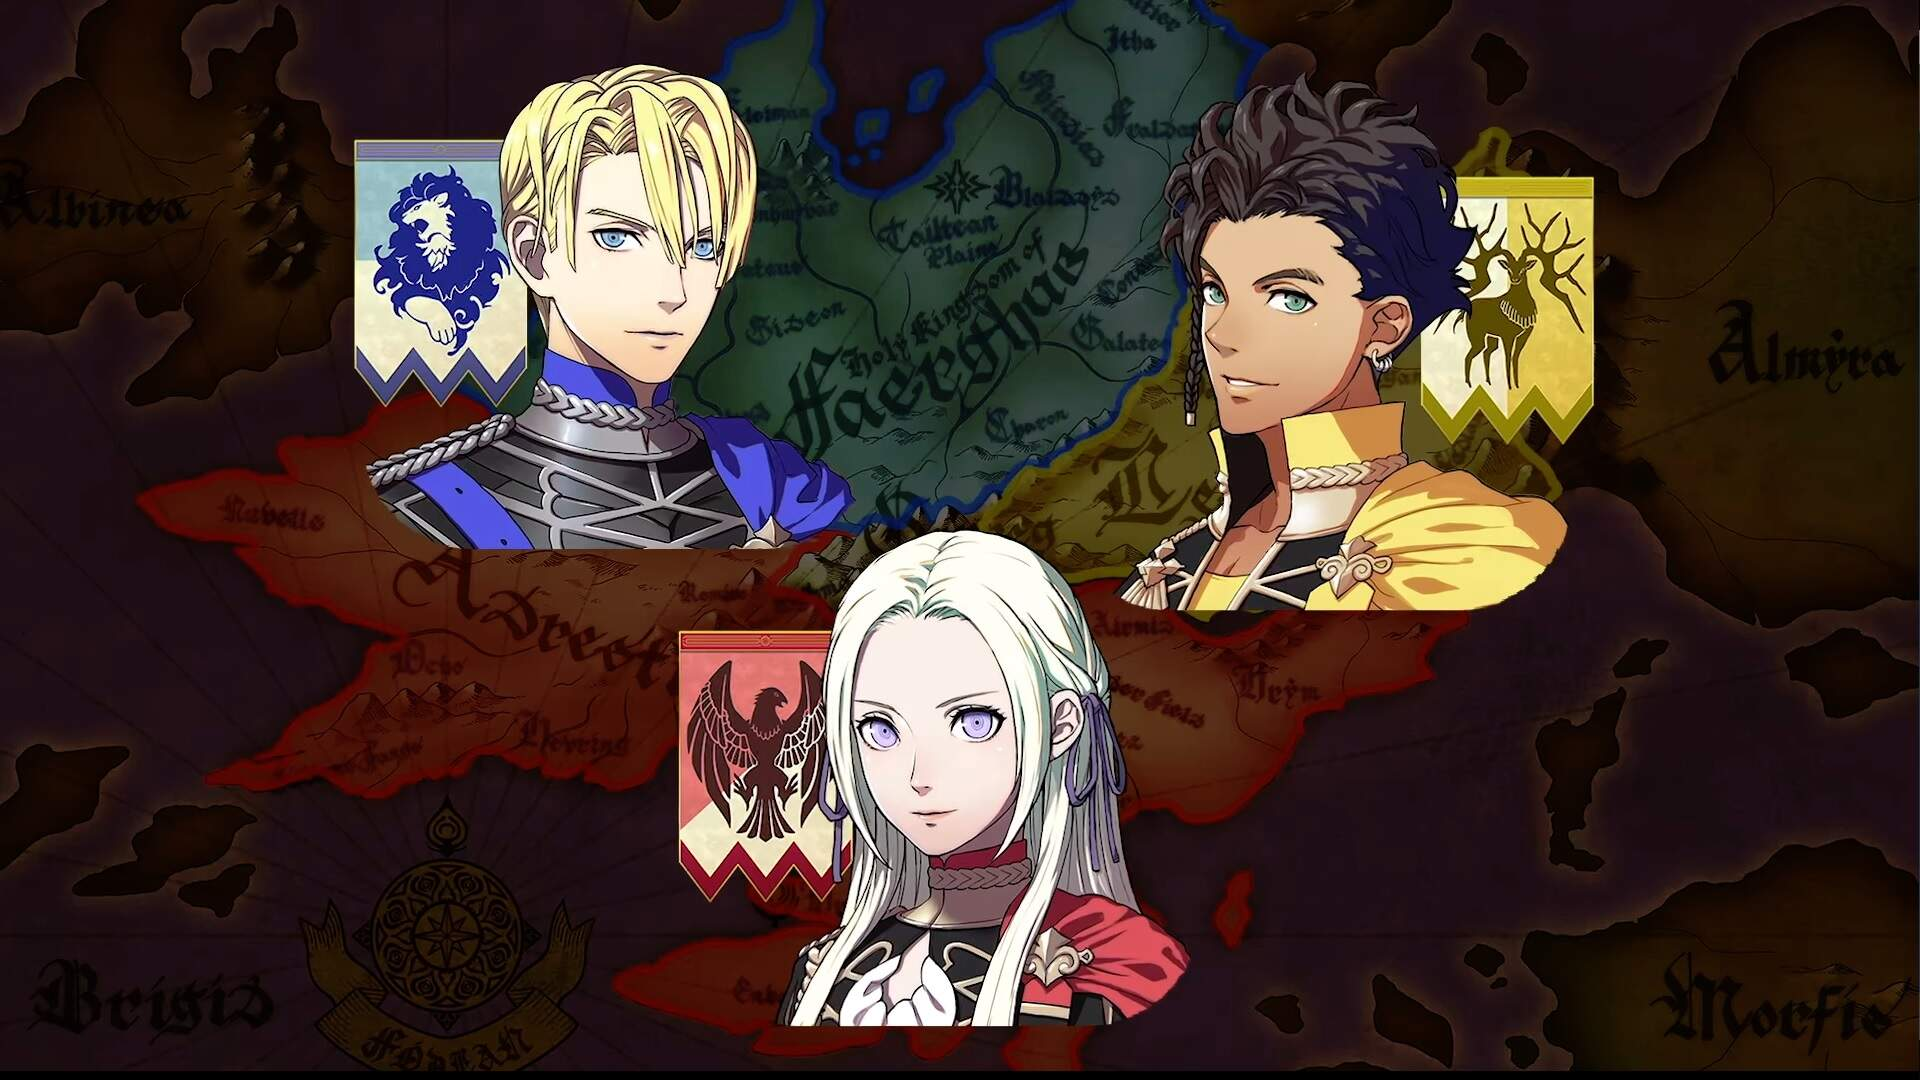 The First Batch of Fire Emblem: Three Houses Characters are Making Their Debut in Fire Emblem Heroes